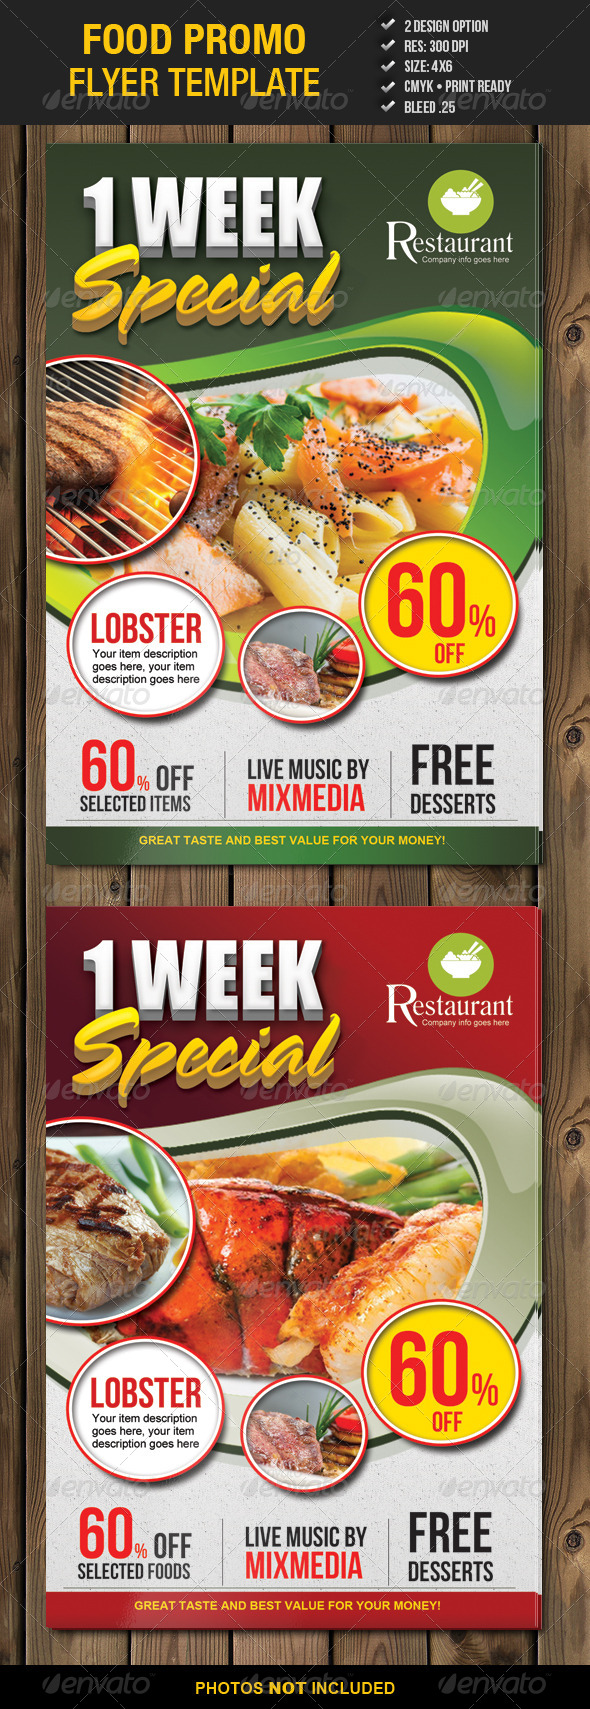 Food Promo Flyer Template 2 - Restaurant Flyers